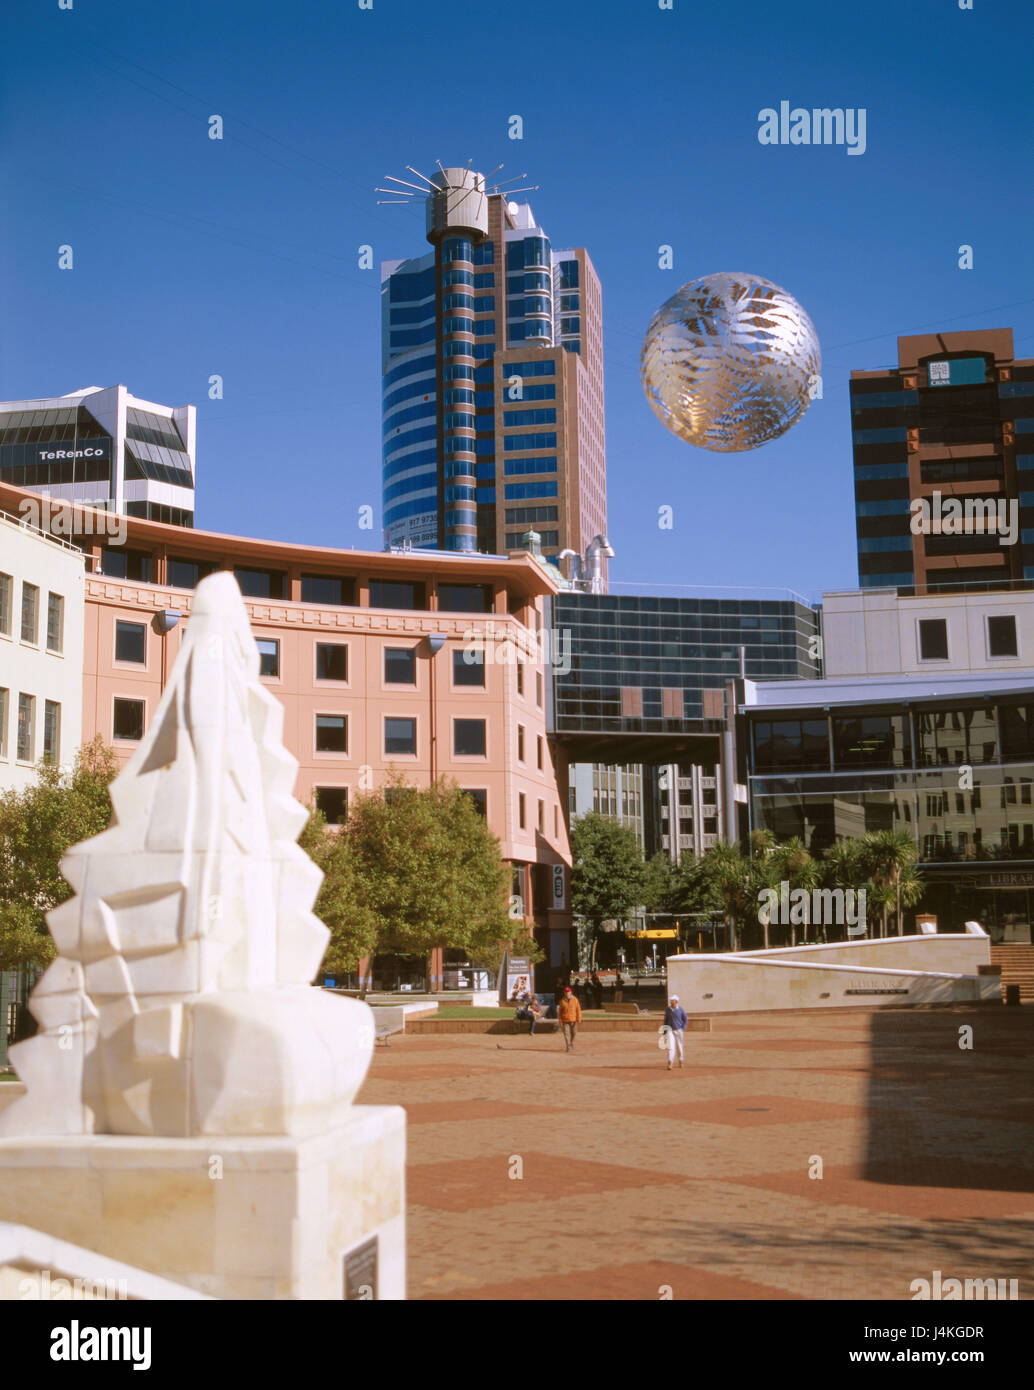 New Zealand, north island, Wellington, Civic Square, 'Silver of ball' island, New Zealand, town, capital, - Stock Image